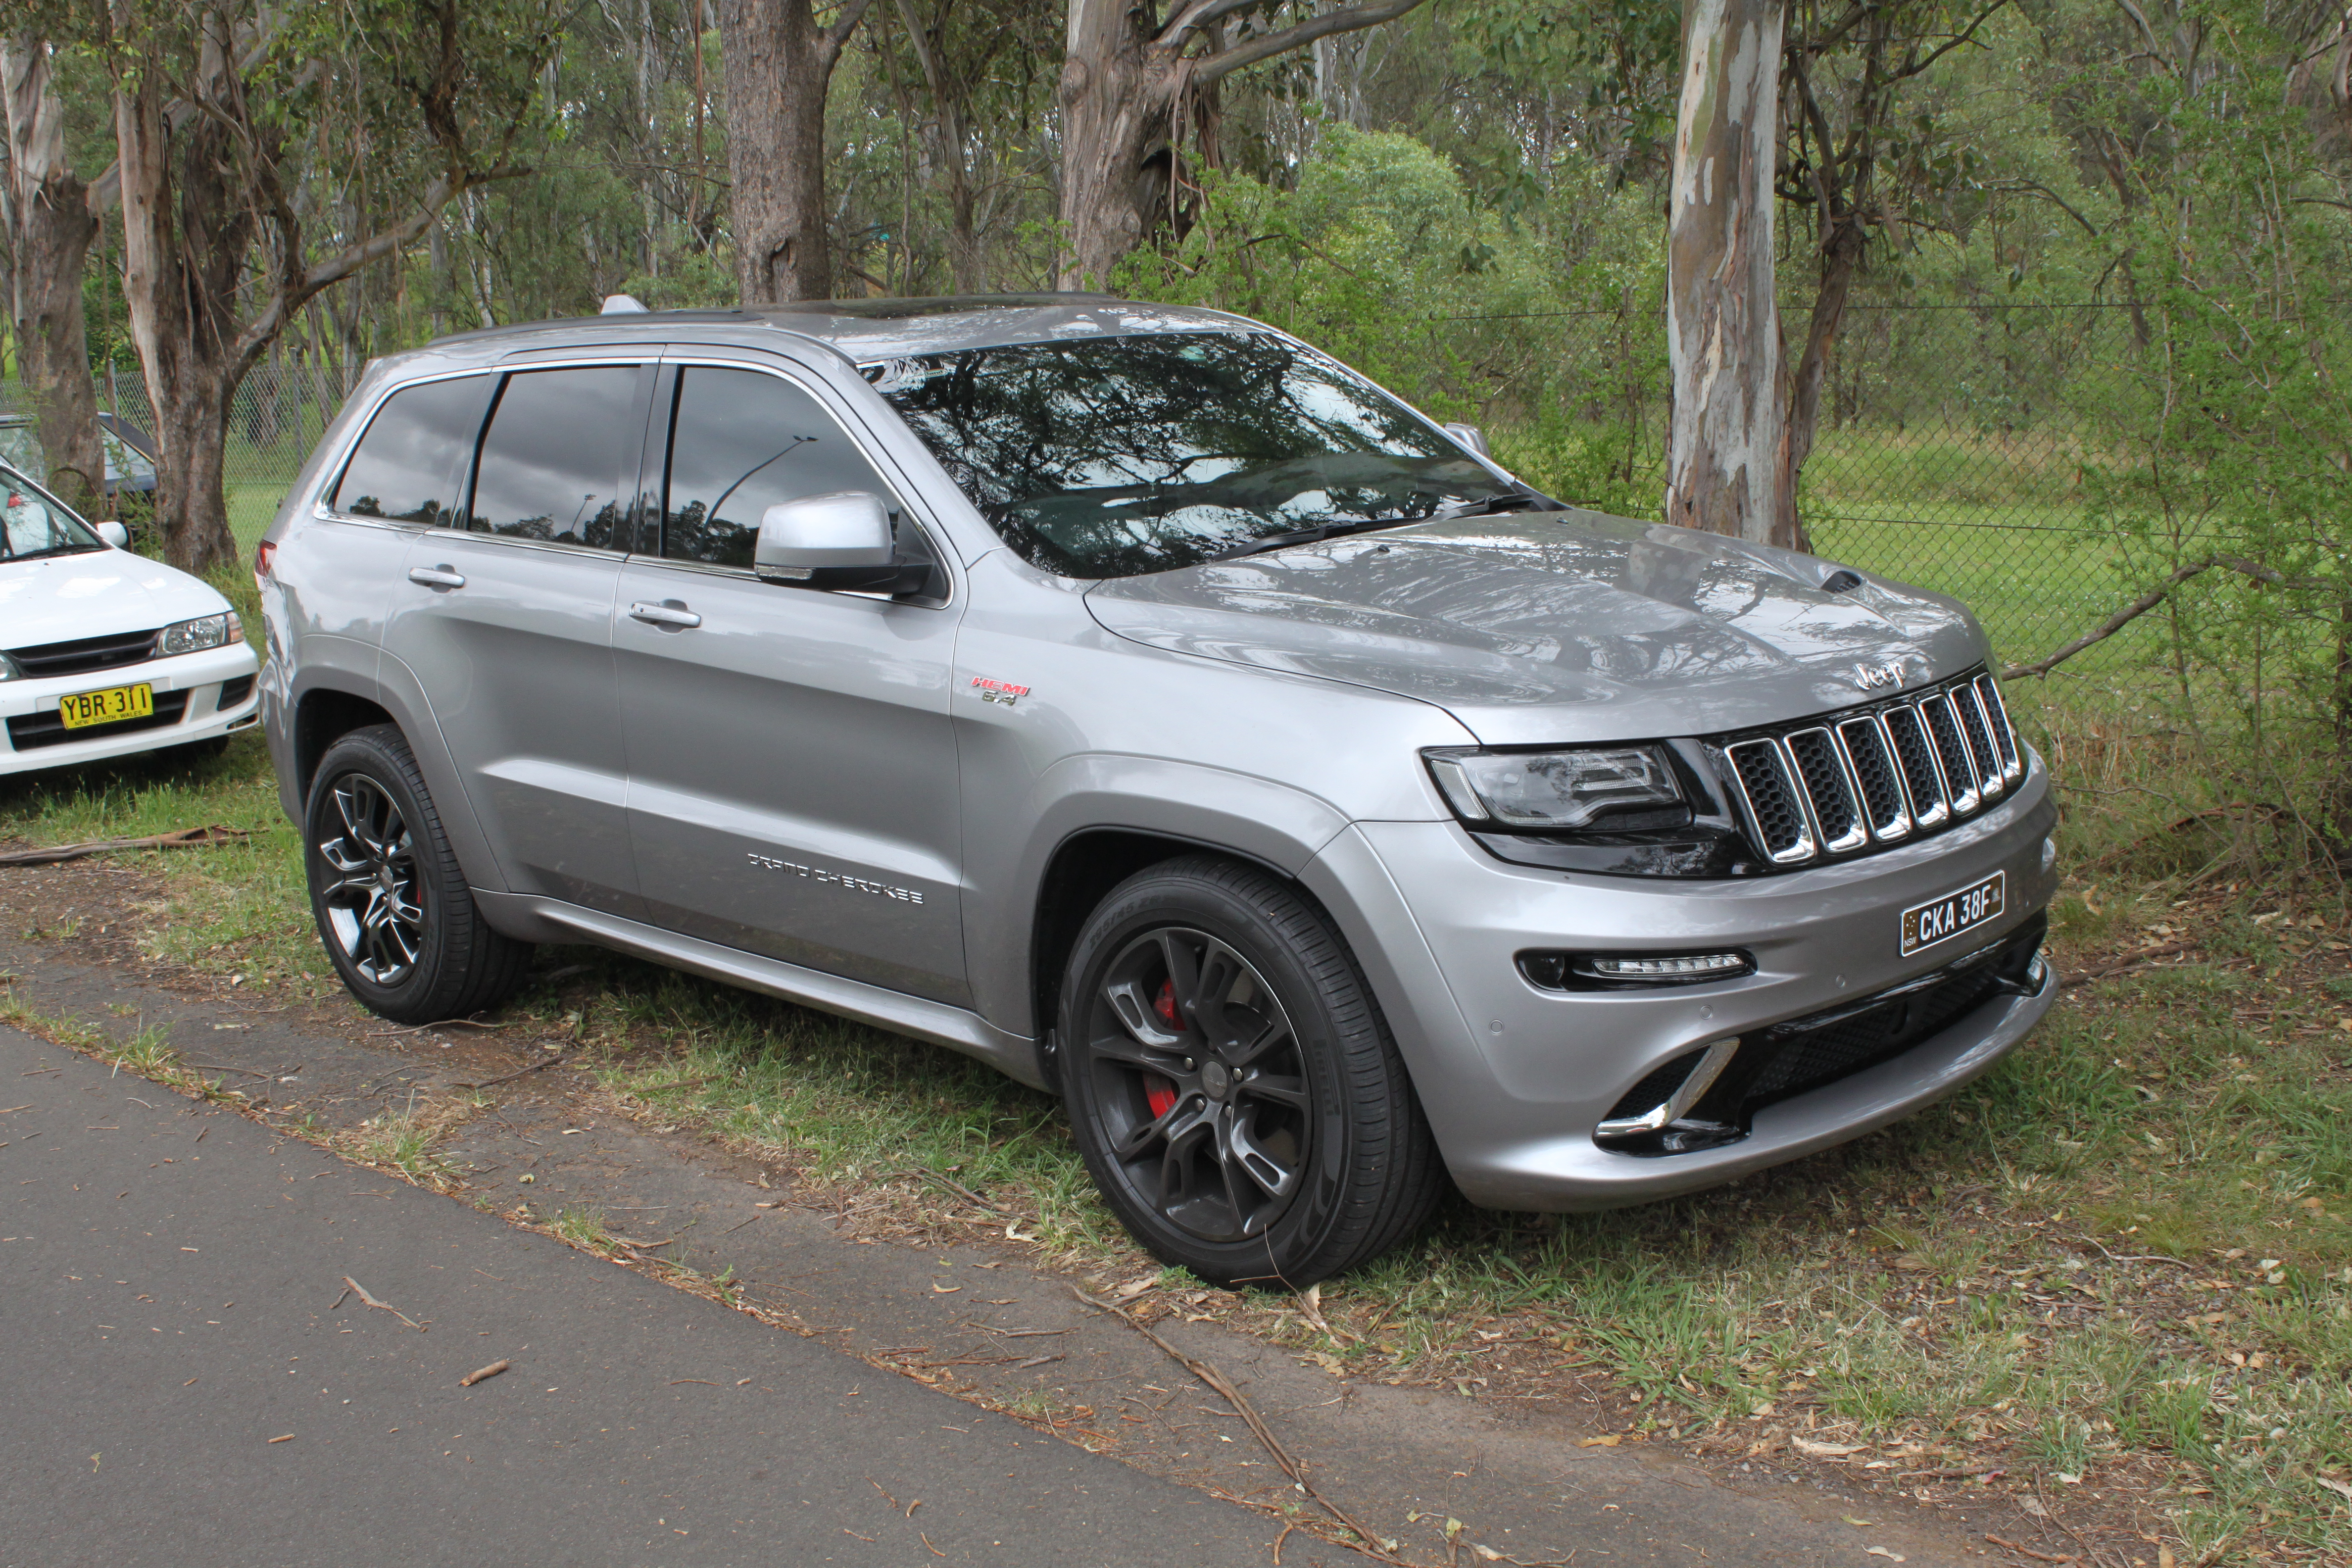 Lifted Jeep Srt8 >> File:2015 Jeep Grand Cherokee (WK2 MY15) SRT wagon (23490804895).jpg - Wikimedia Commons